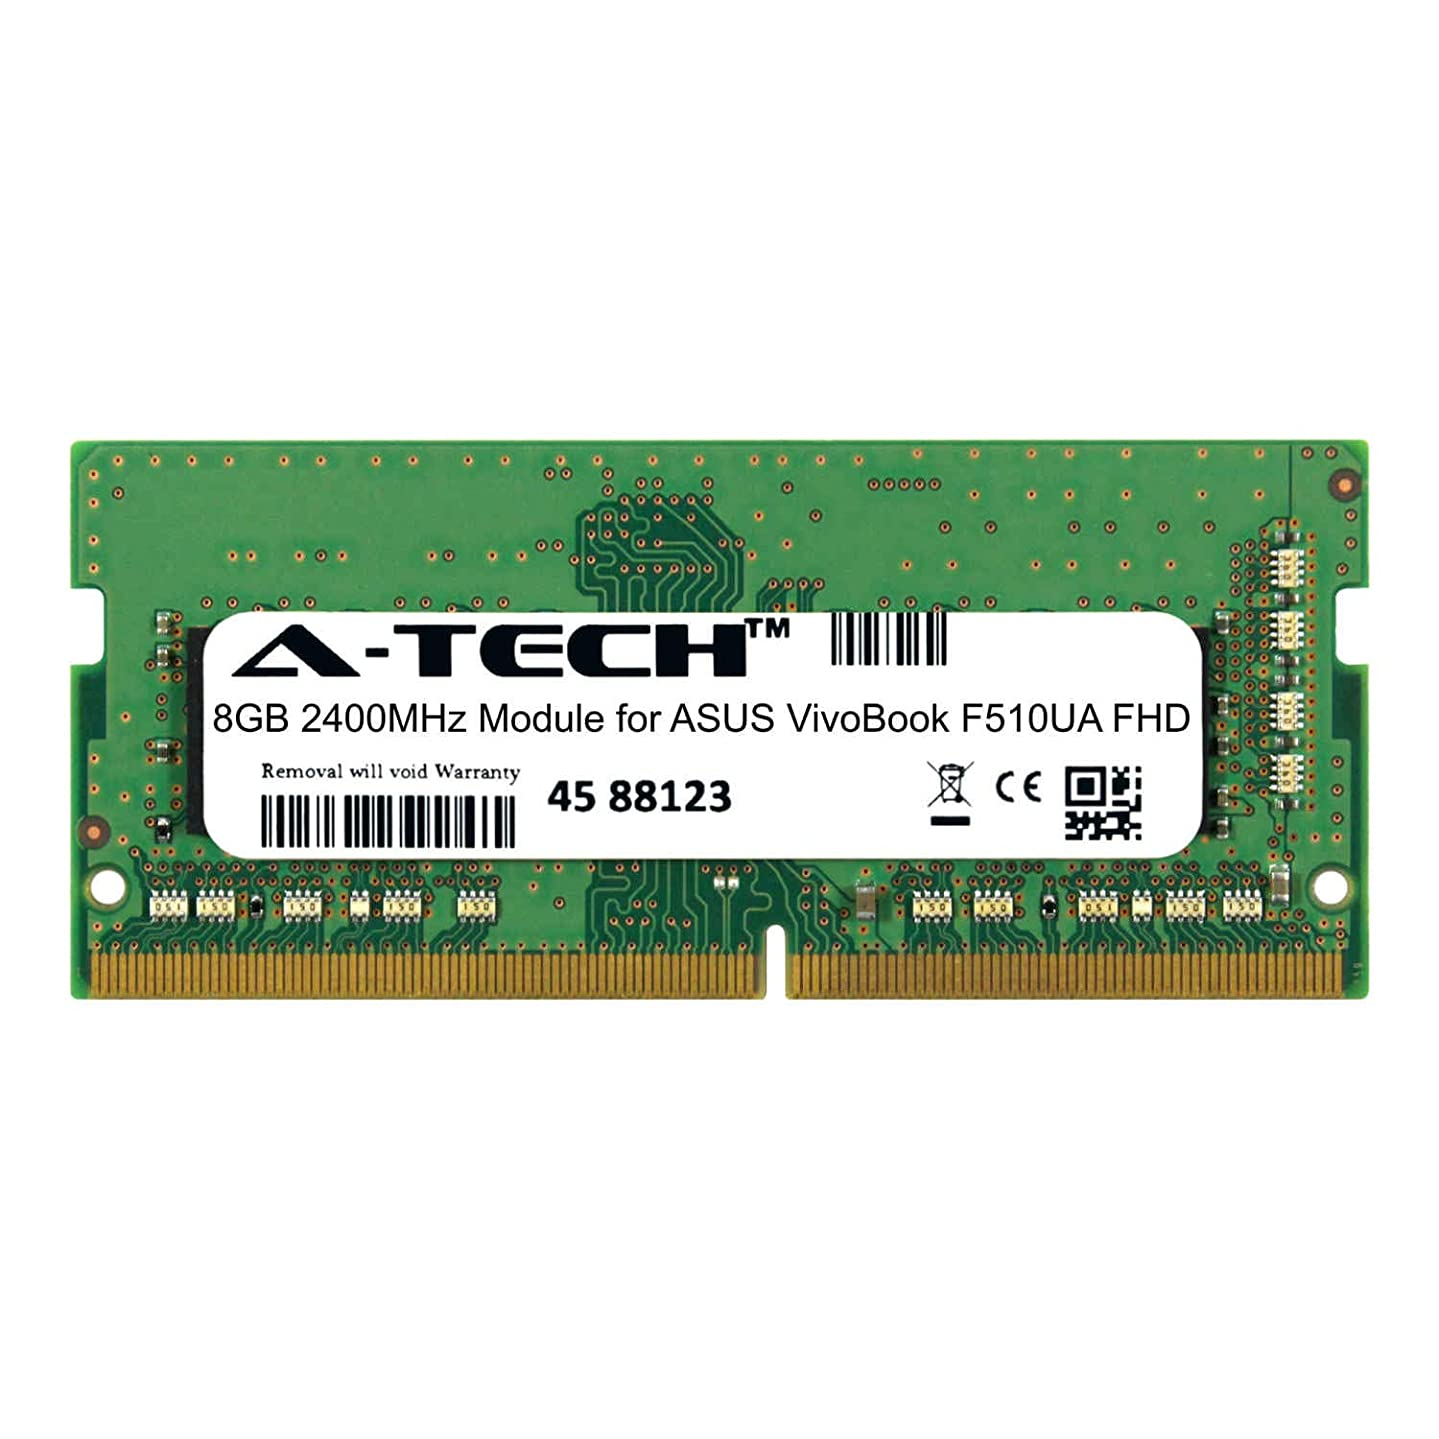 A-Tech 8GB Module for ASUS VivoBook F510UA FHD Laptop & Notebook Compatible DDR4 2400Mhz Memory Ram (ATMS360229A25827X1)